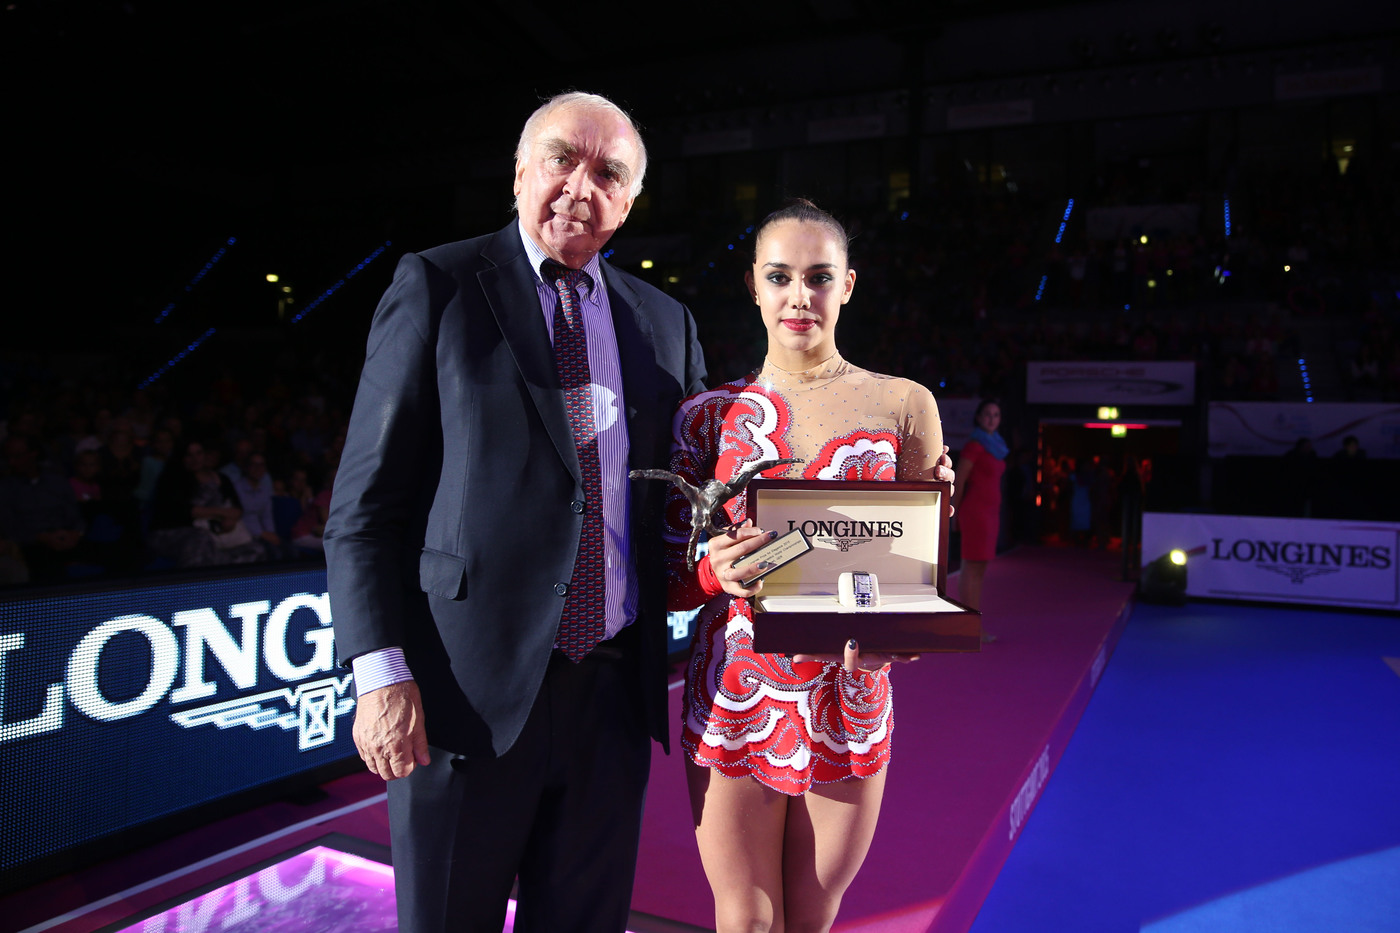 Longines Gymnastics Event: Margarita Mamun awarded with the Longines Prize for Elegance at the 34th Rhythmic Gymnastics World Championships 2015 2